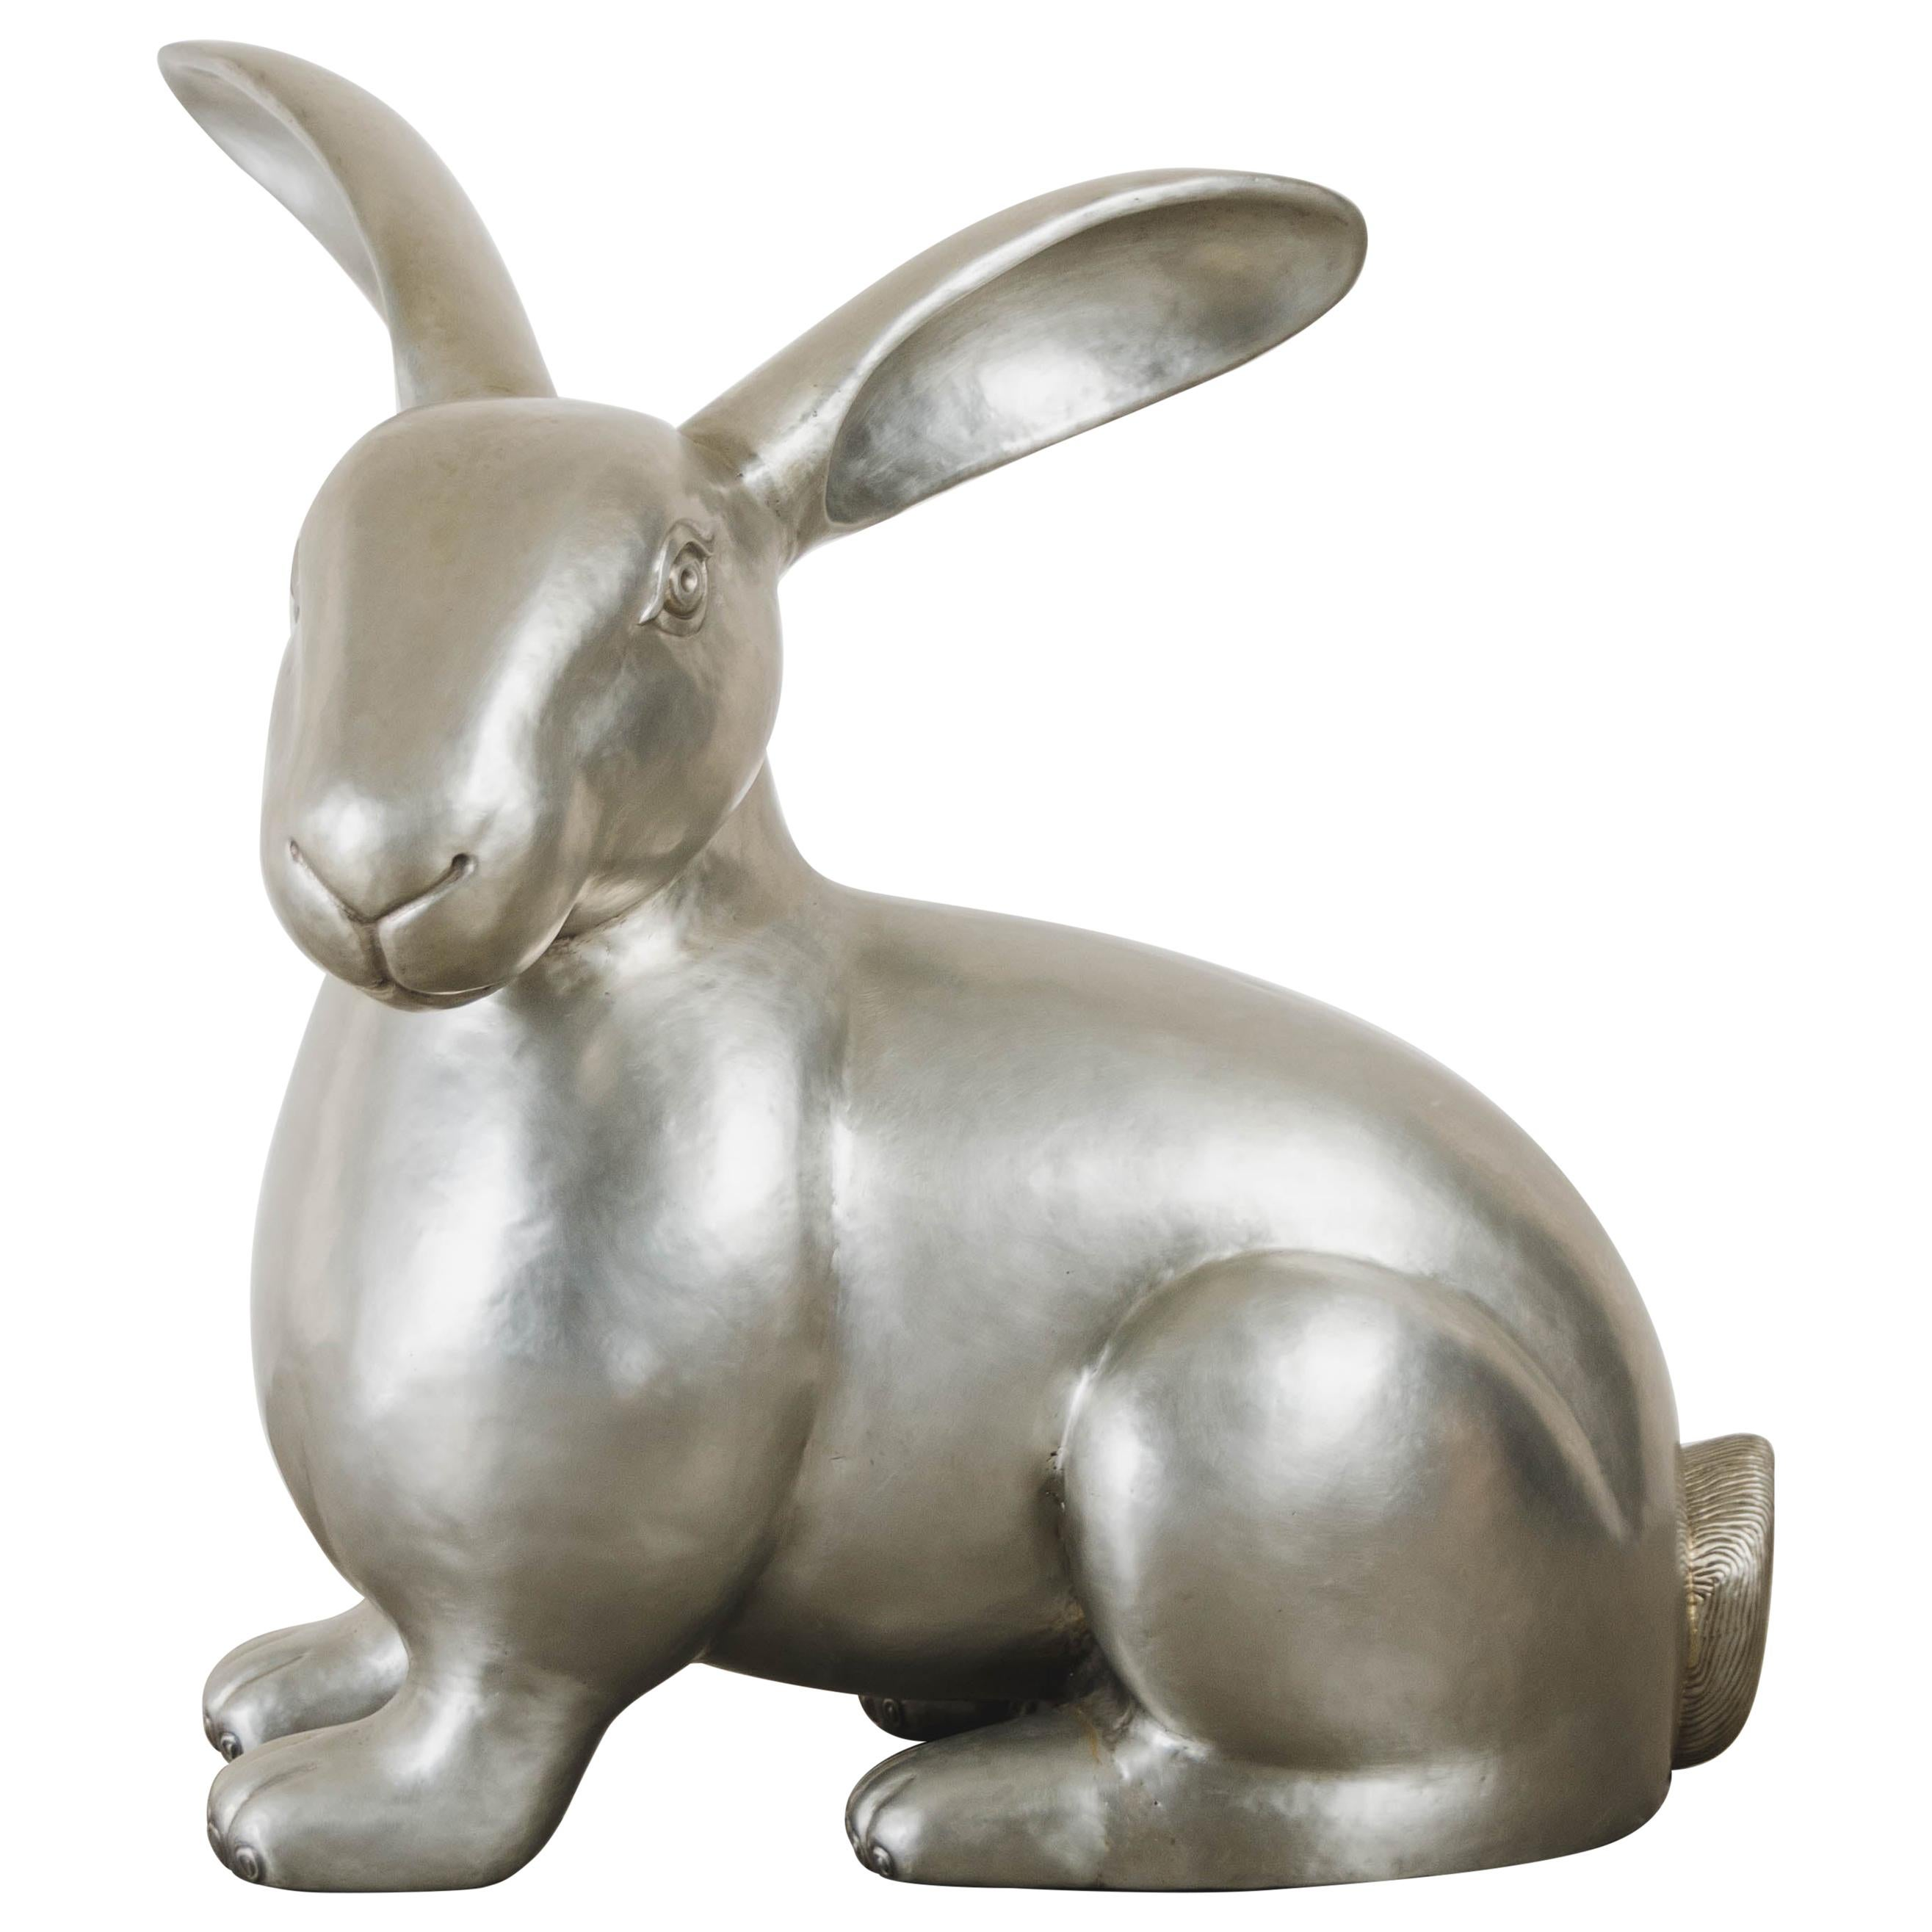 Contemporary White Bronze Rabbit Sculpture by Robert Kuo, Hand Repoussé